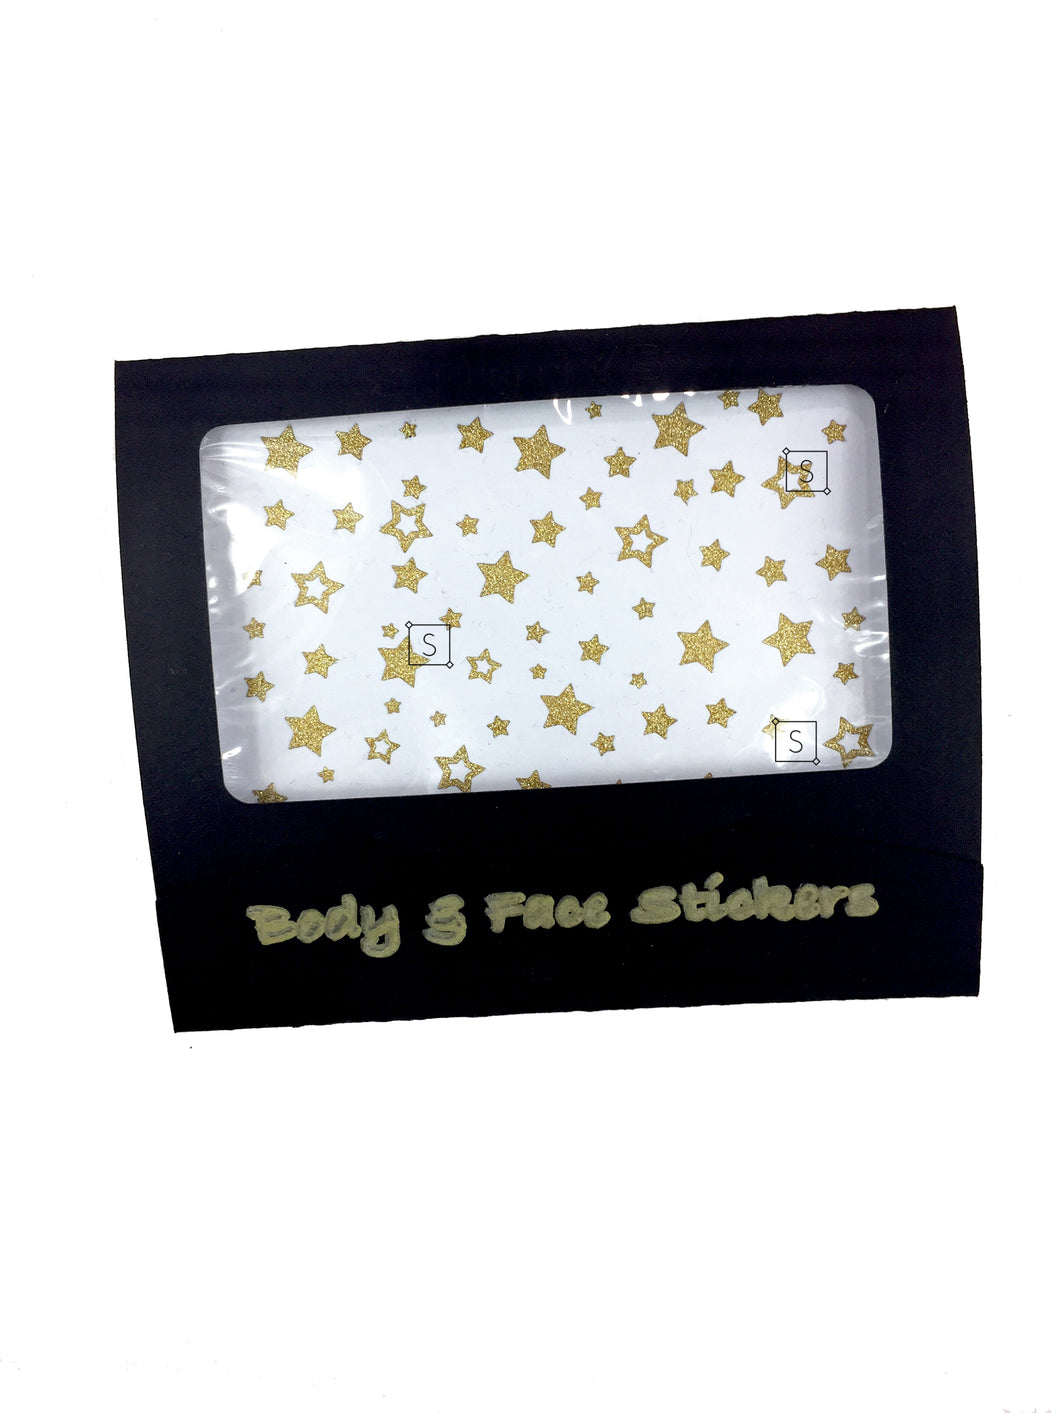 Fallen Stars Body & Face Stickers - Stinnys